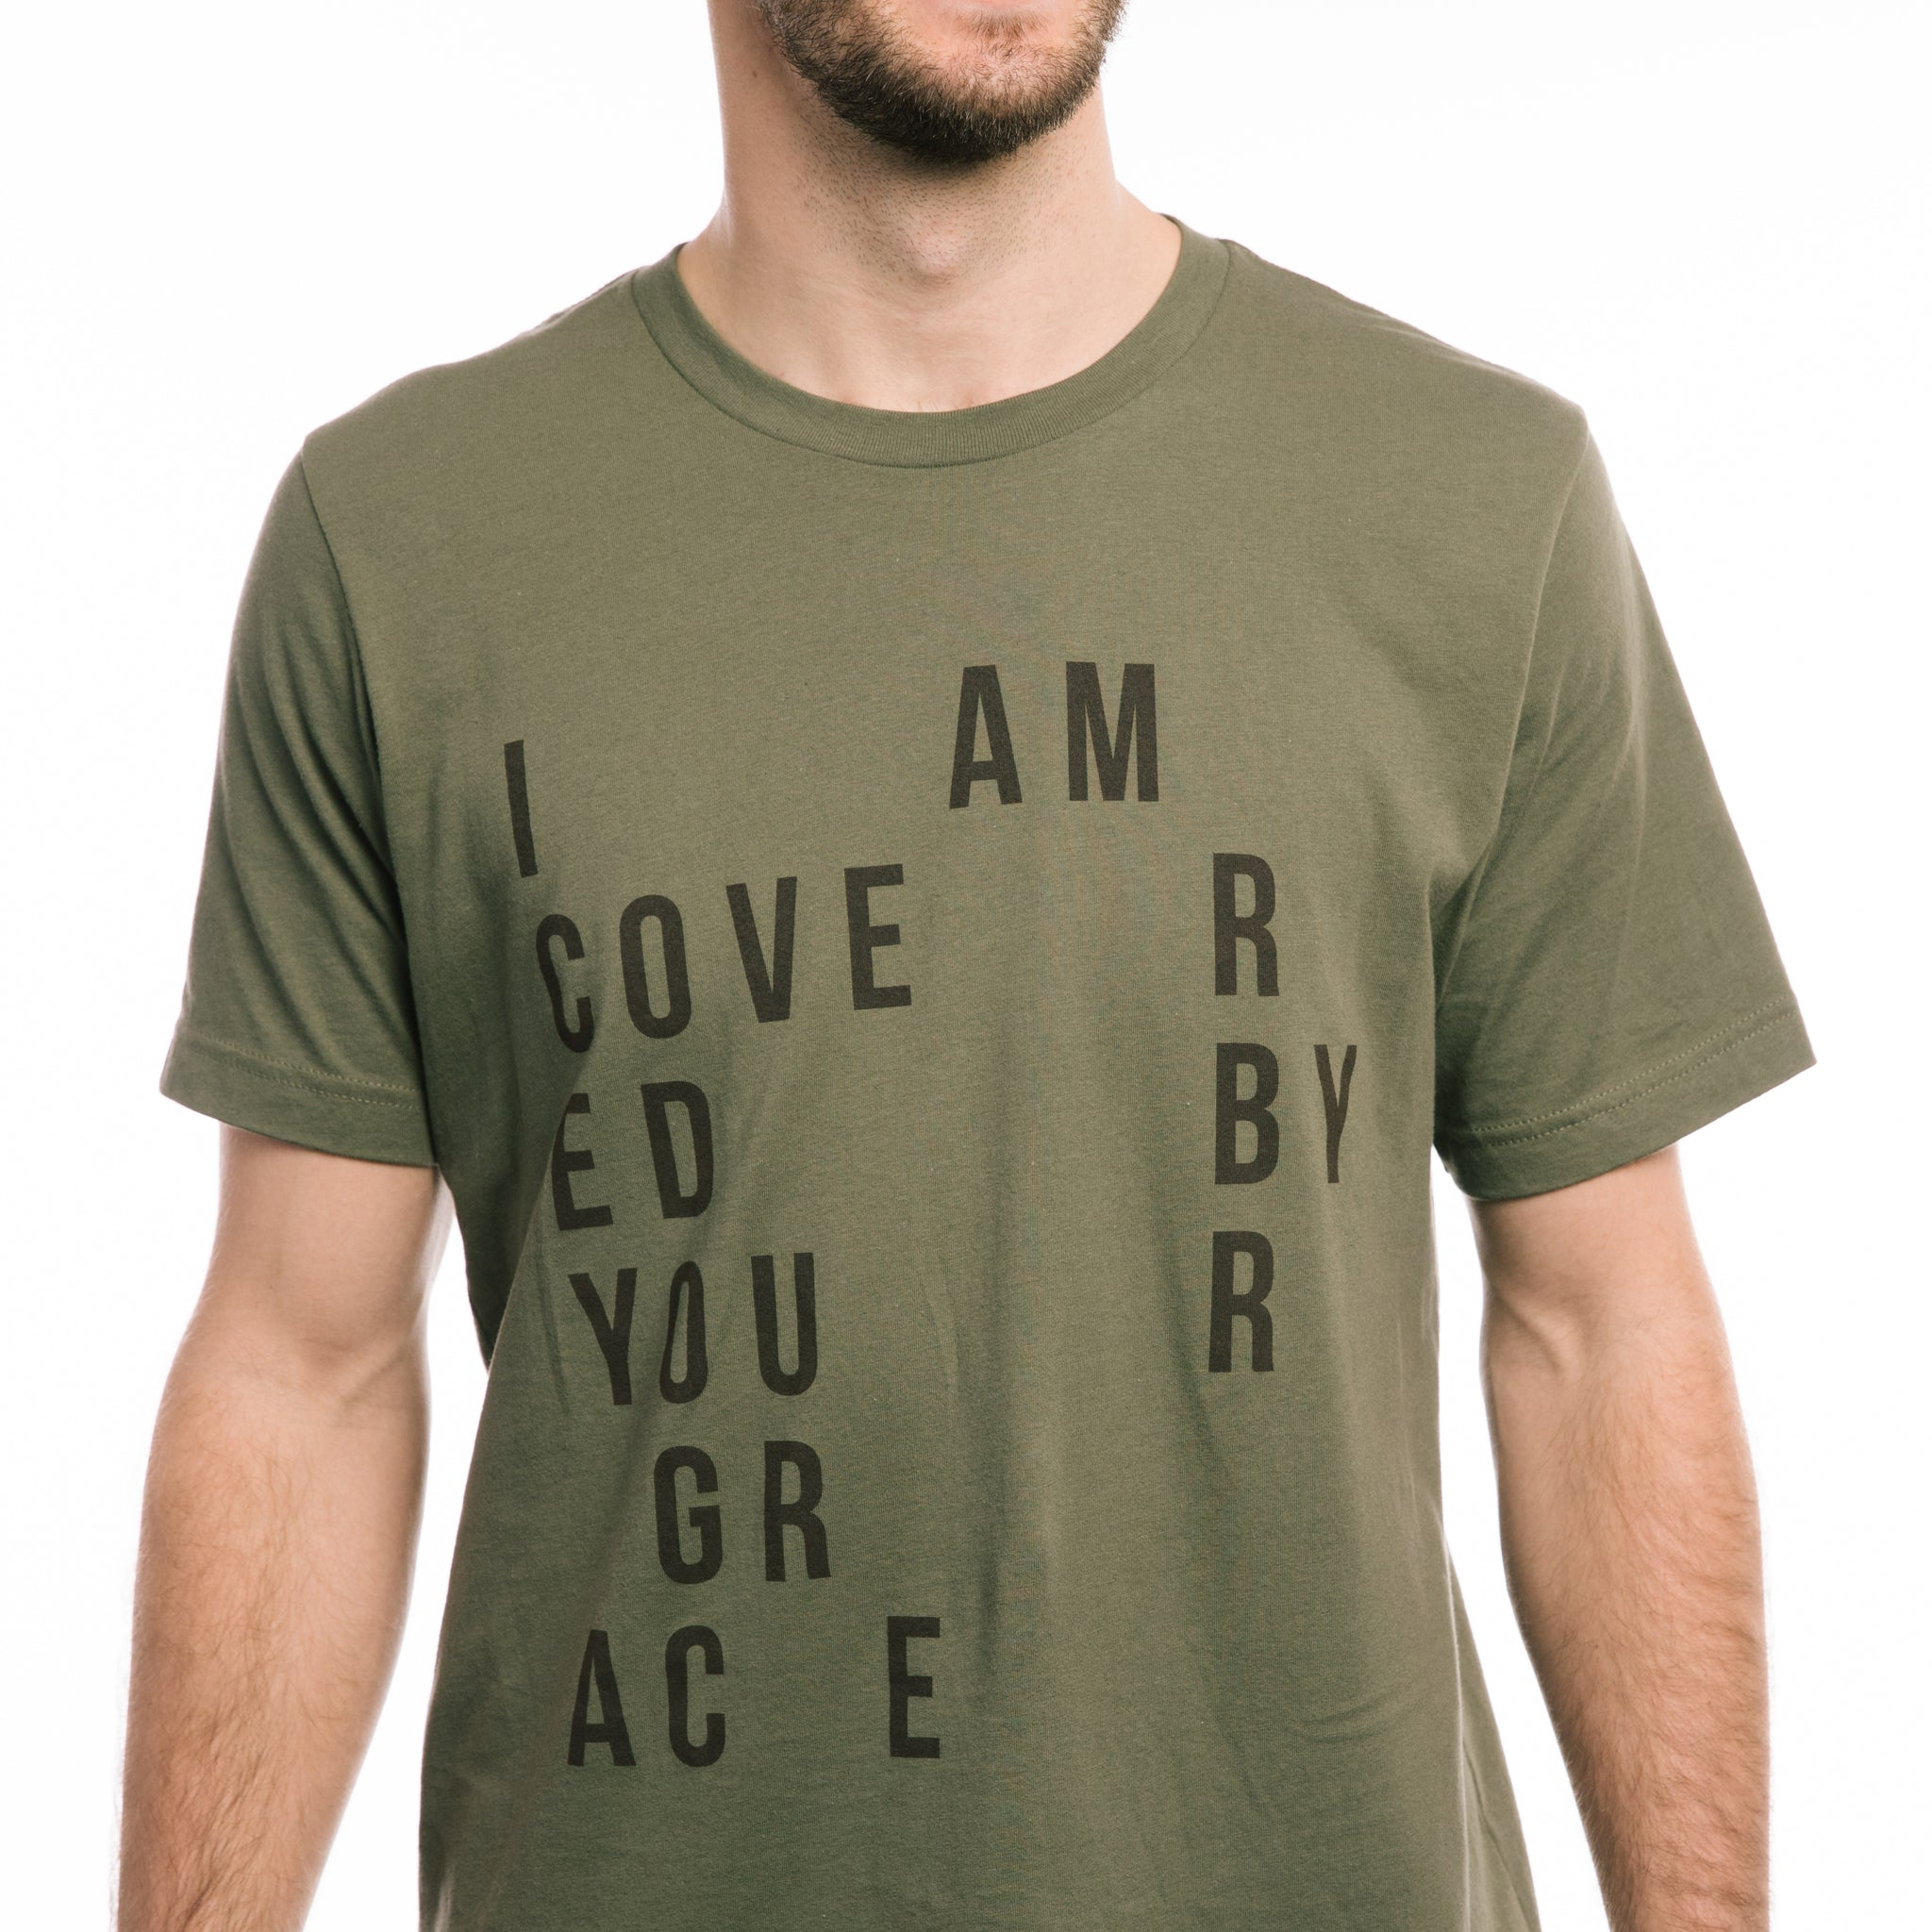 Covered by Your Grace T-Shirt